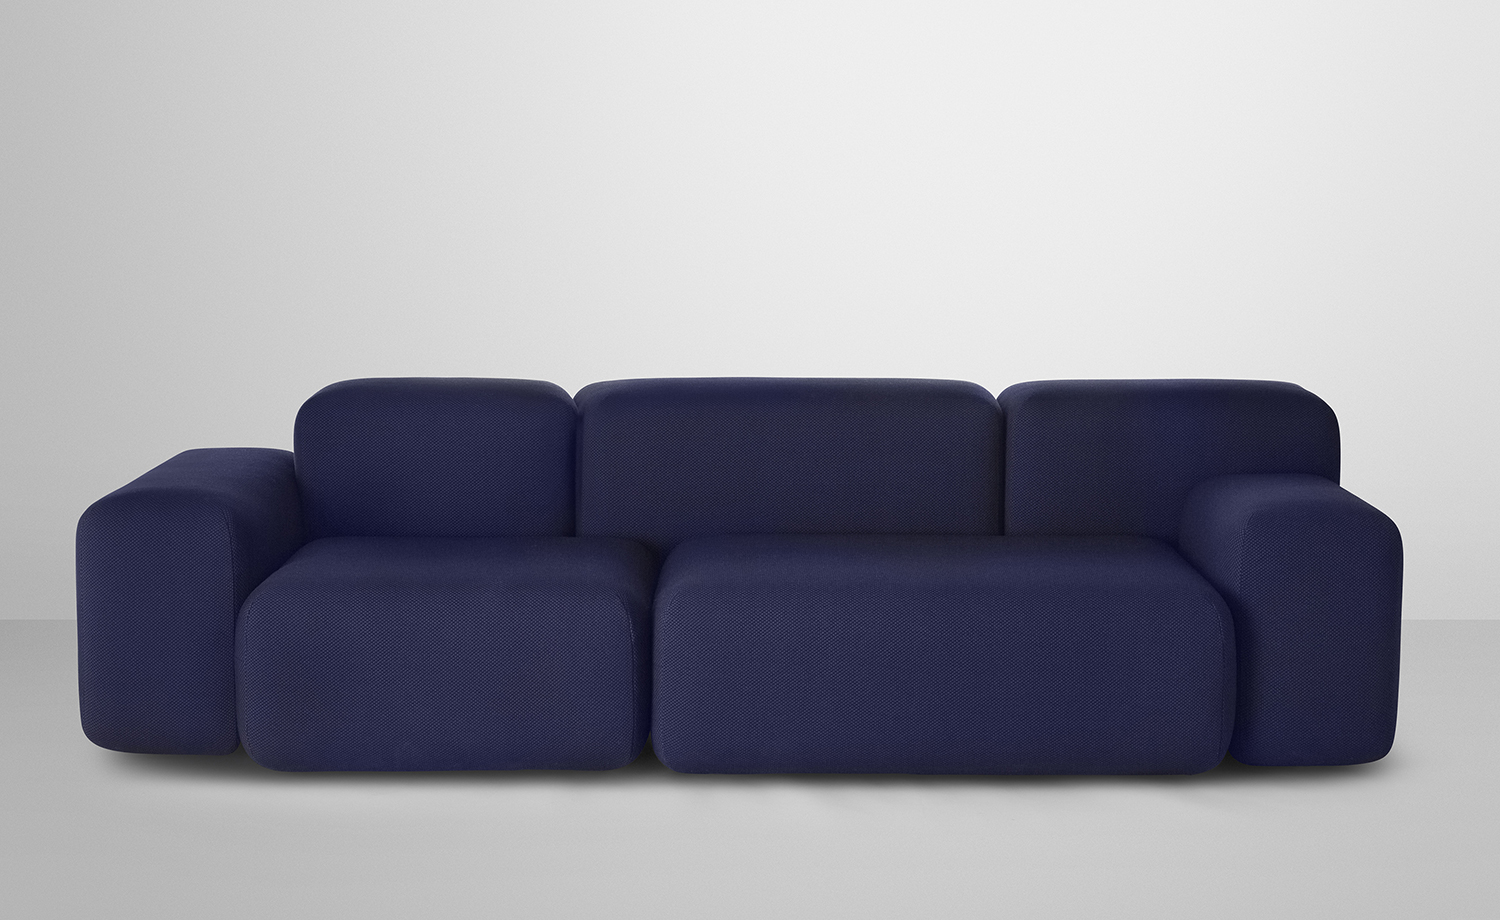 Soft Blocks-Sofa von Muuto